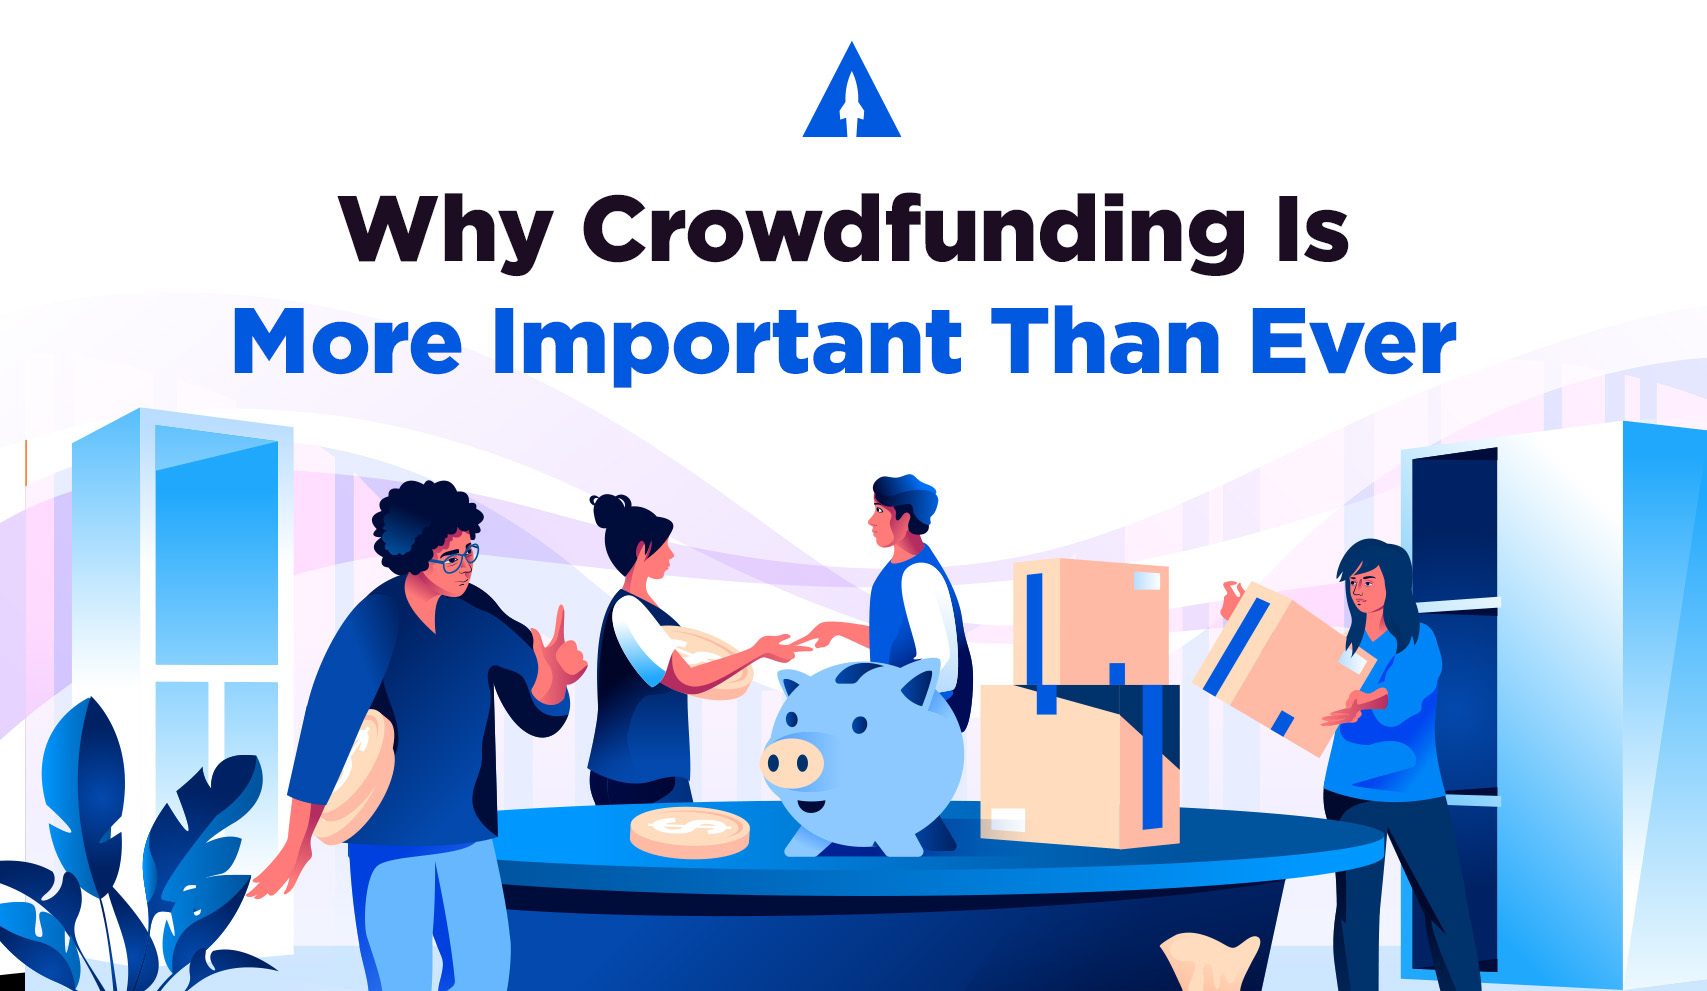 Why Crowdfunding is More Important Than Ever